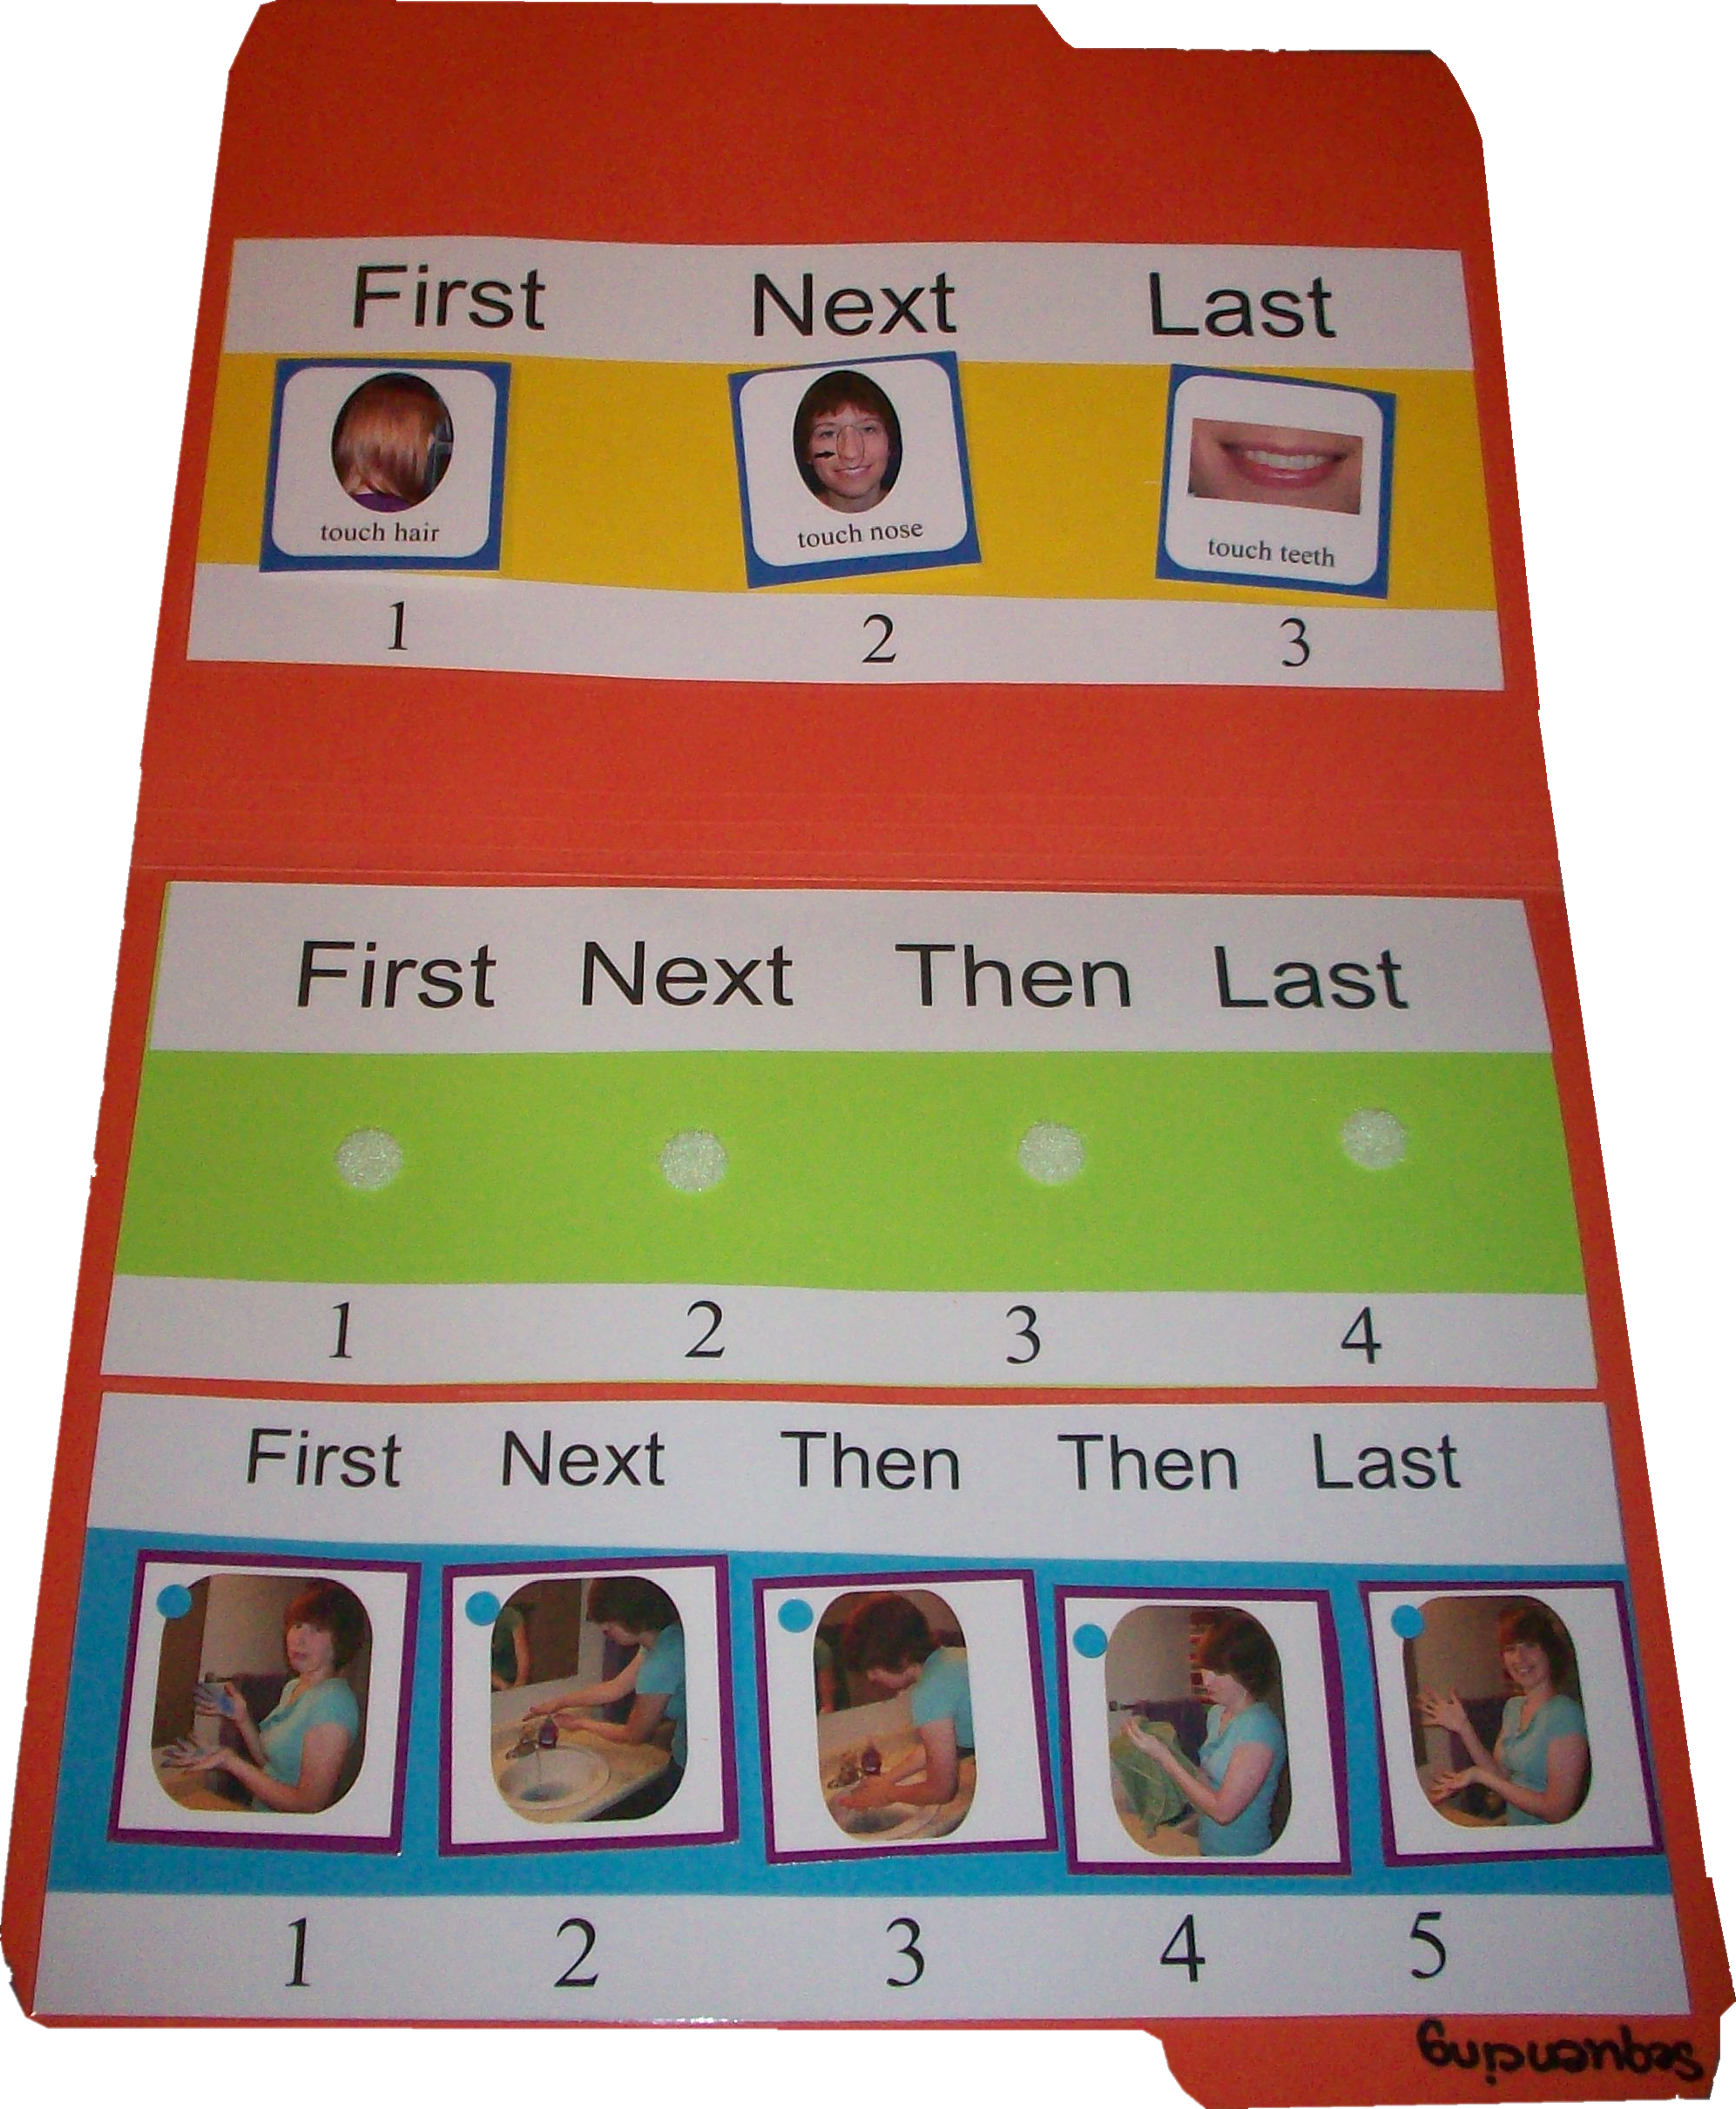 3 5 Step Sequencing Board File Folder Game With Three Sequencing Strips For 3 4 And 5 Step